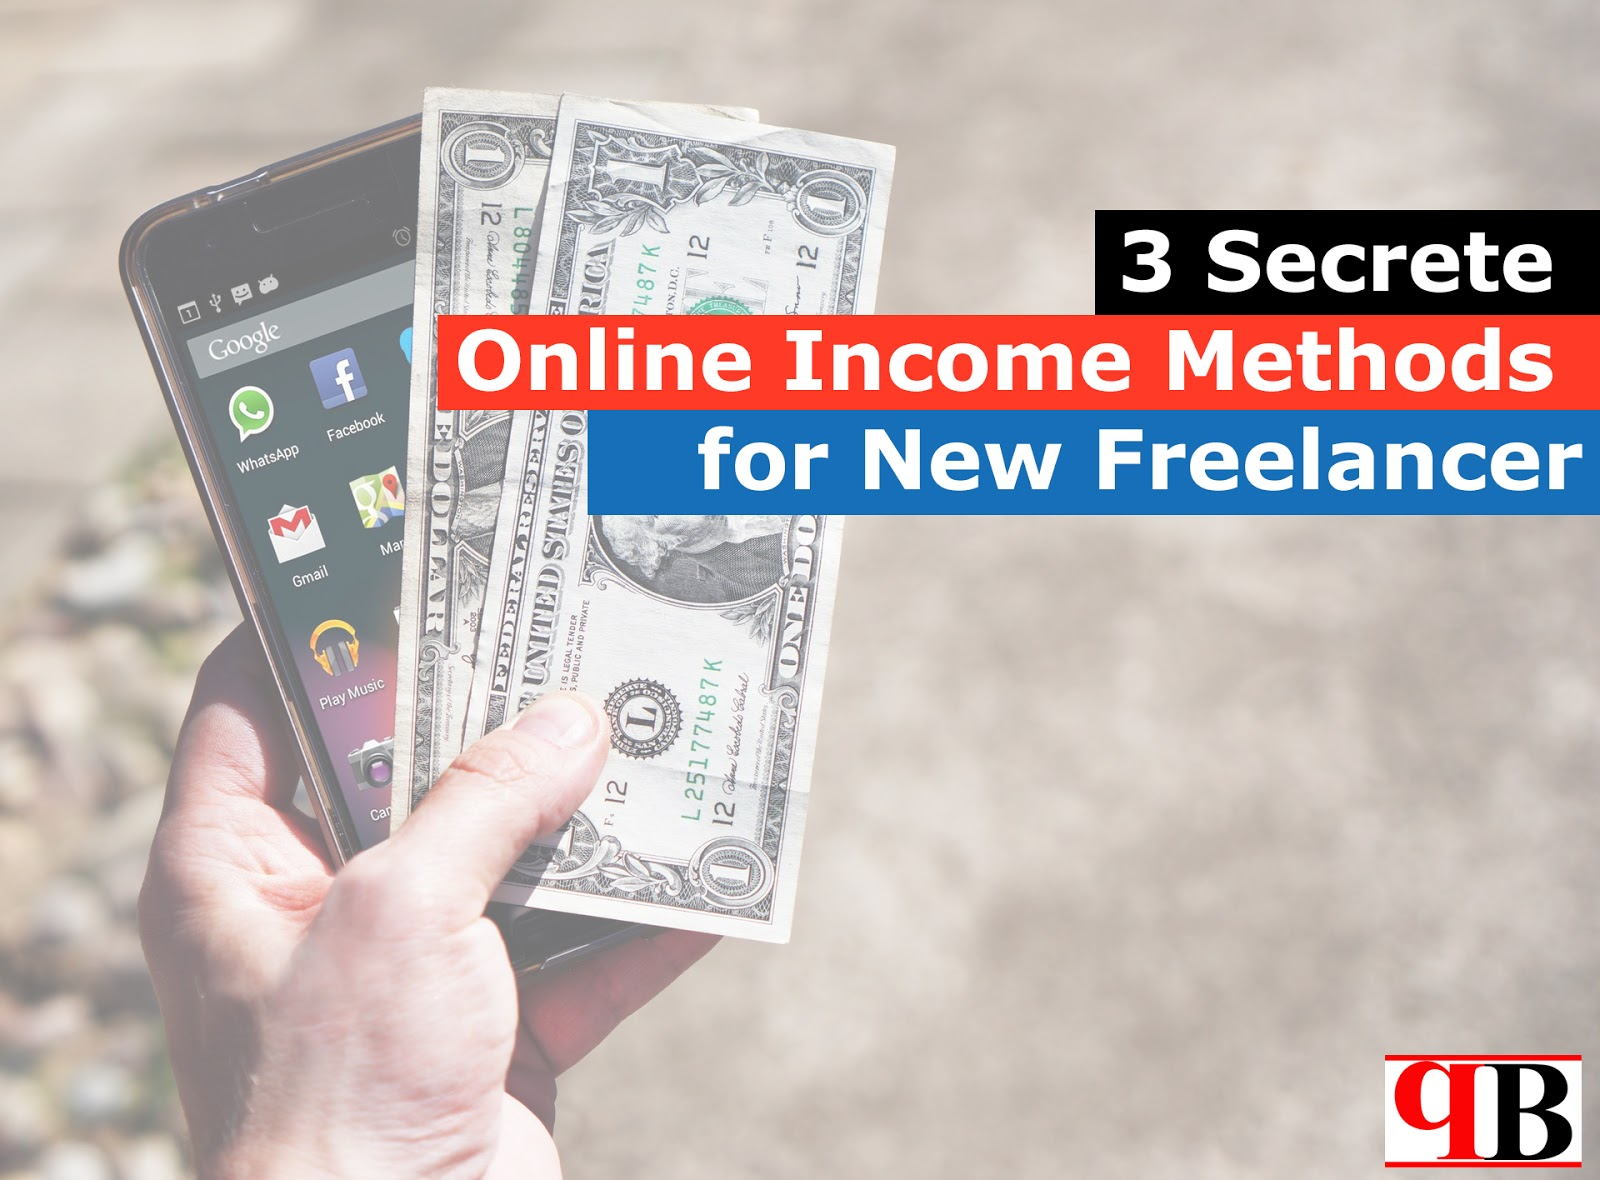 3 Secrete Online Income Methods for New Freelancer